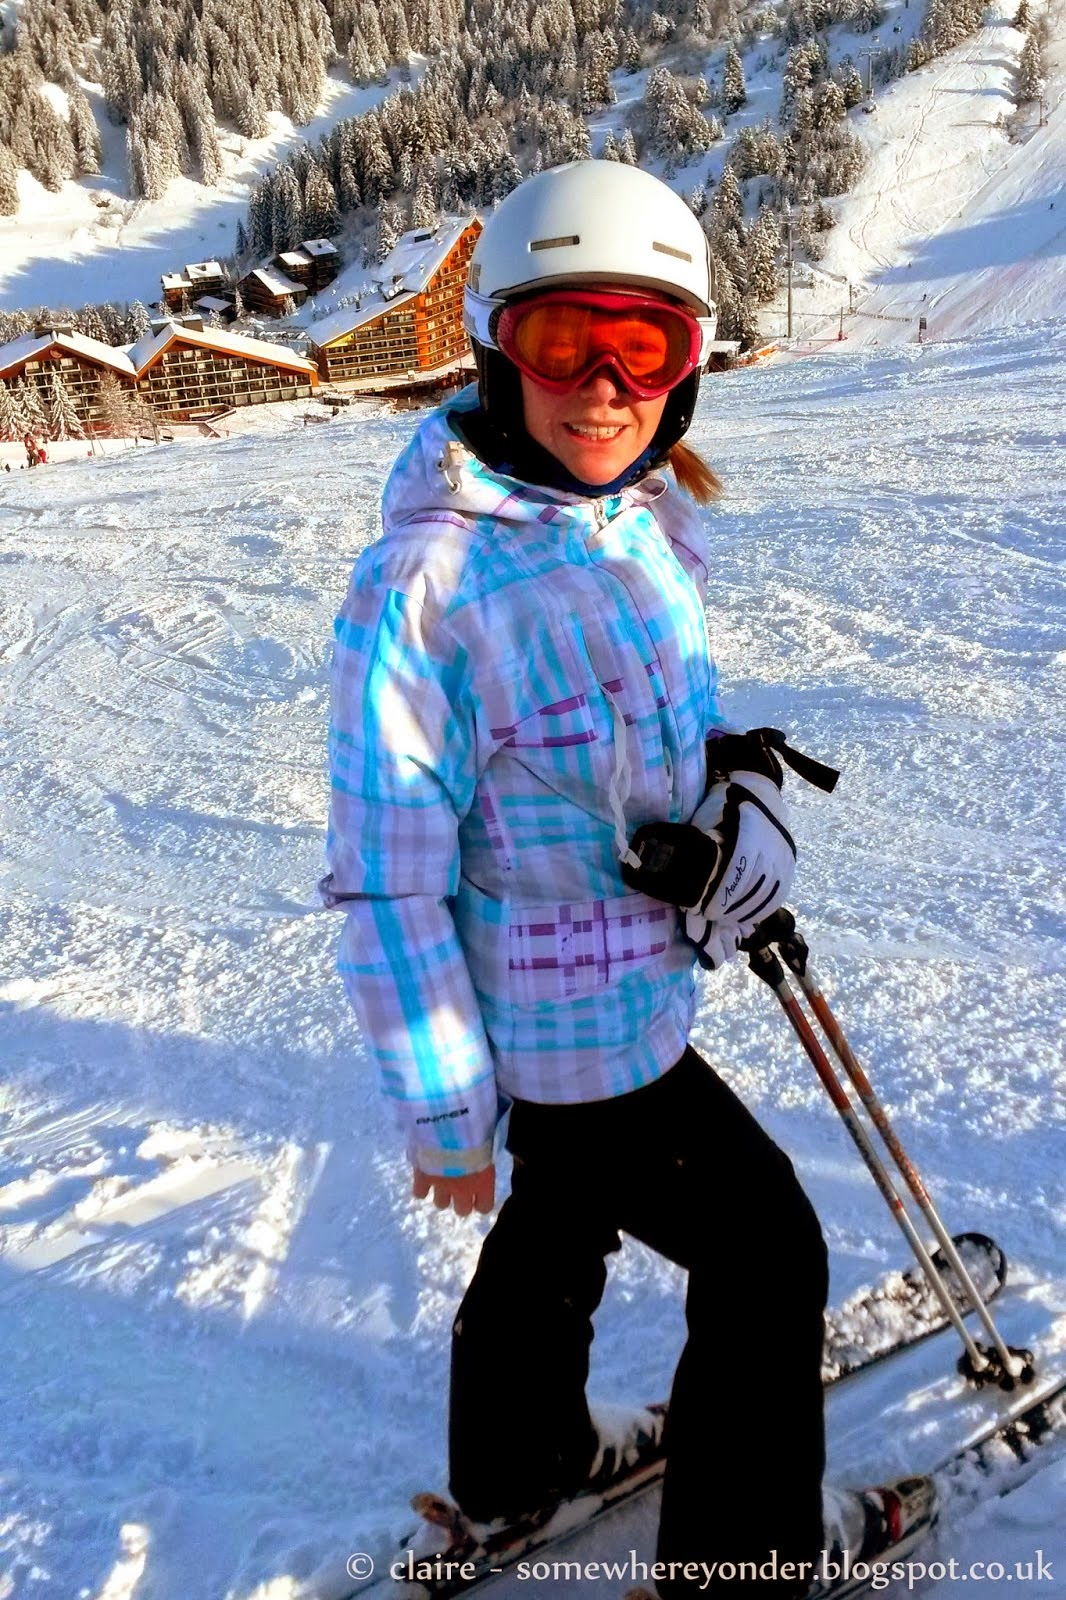 on the slopes - Christmas 2013 - Val Thorens, France